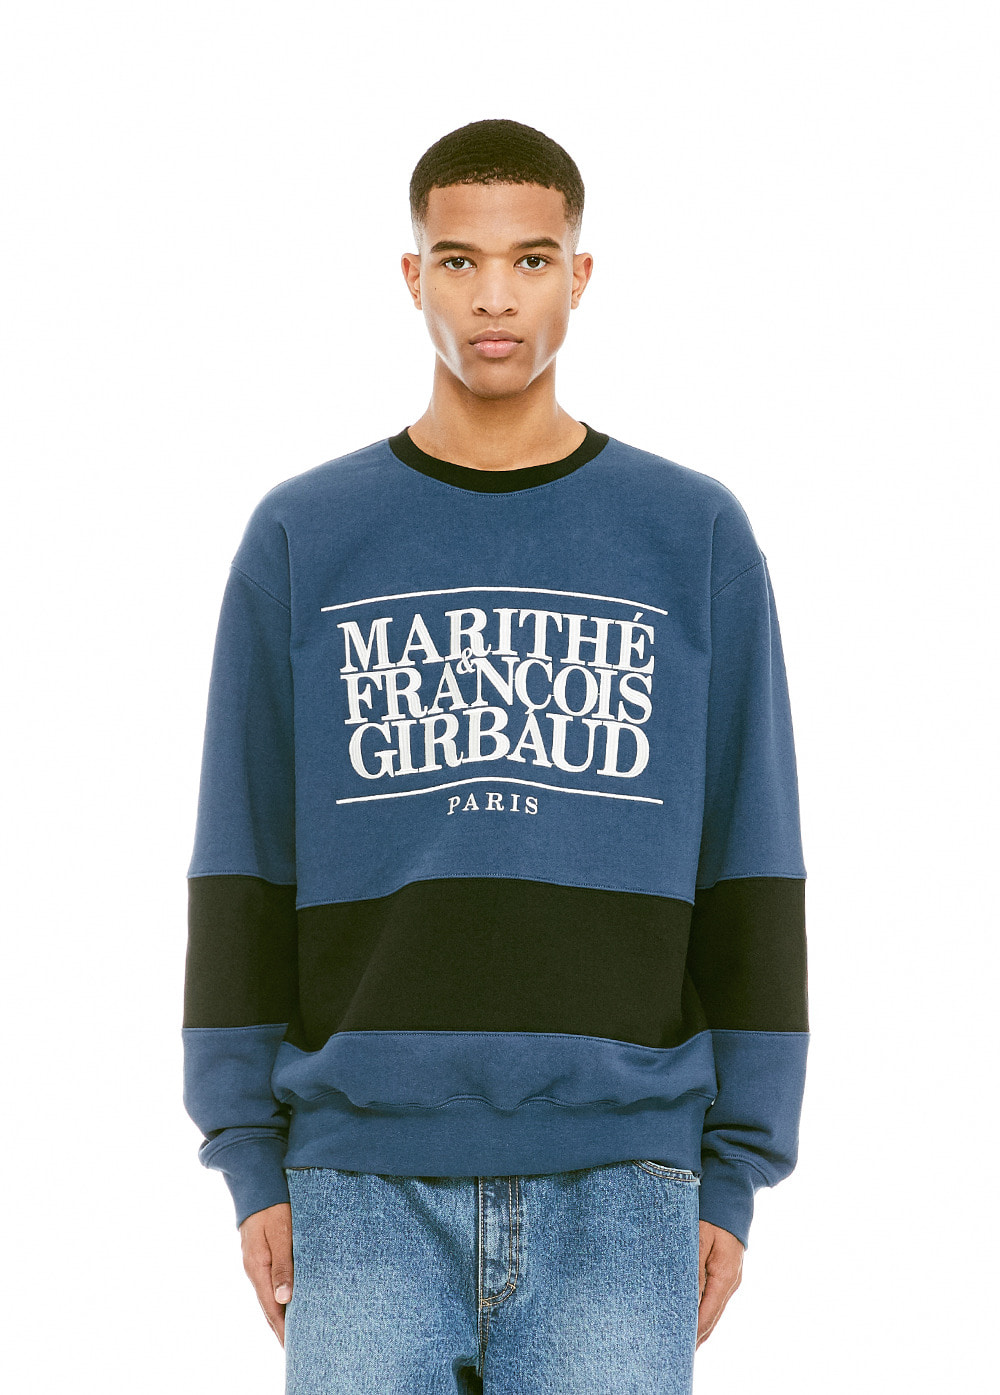 MFG TWO TONE SWEATSHIRT jade/black